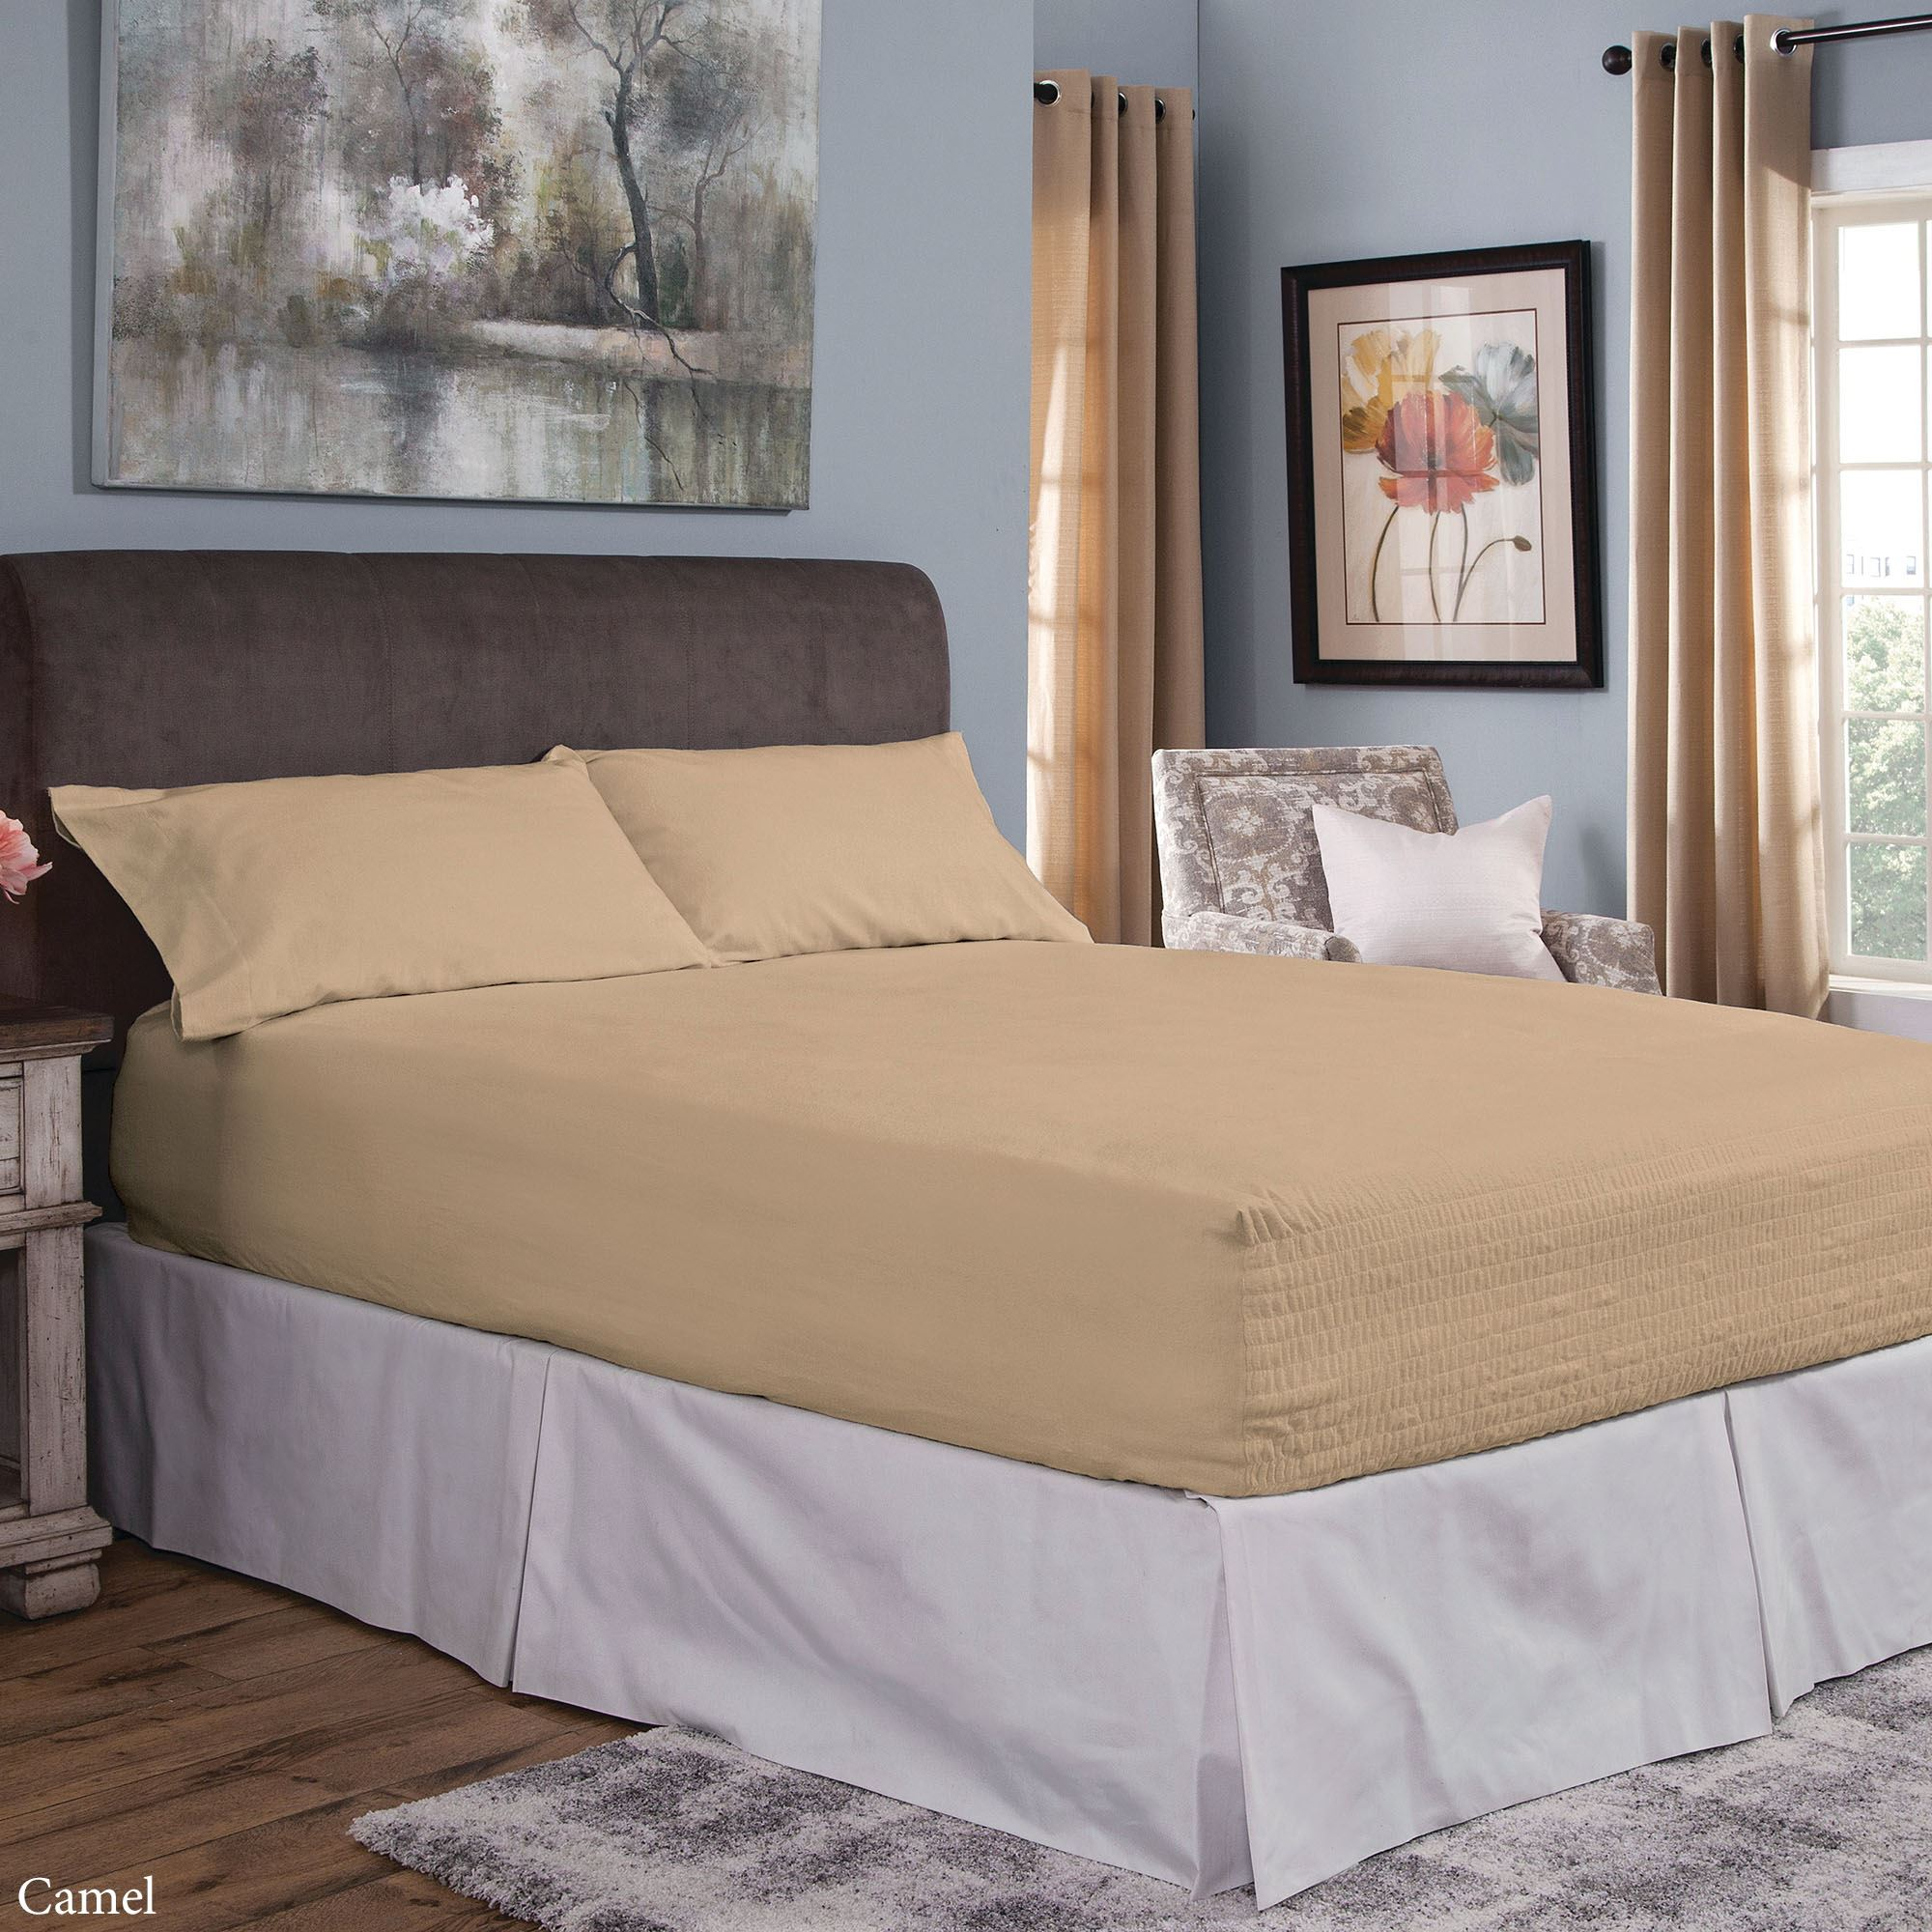 Tropical Fitted Sheet Cover with All-Round Elastic Pocket in 4 Sizes